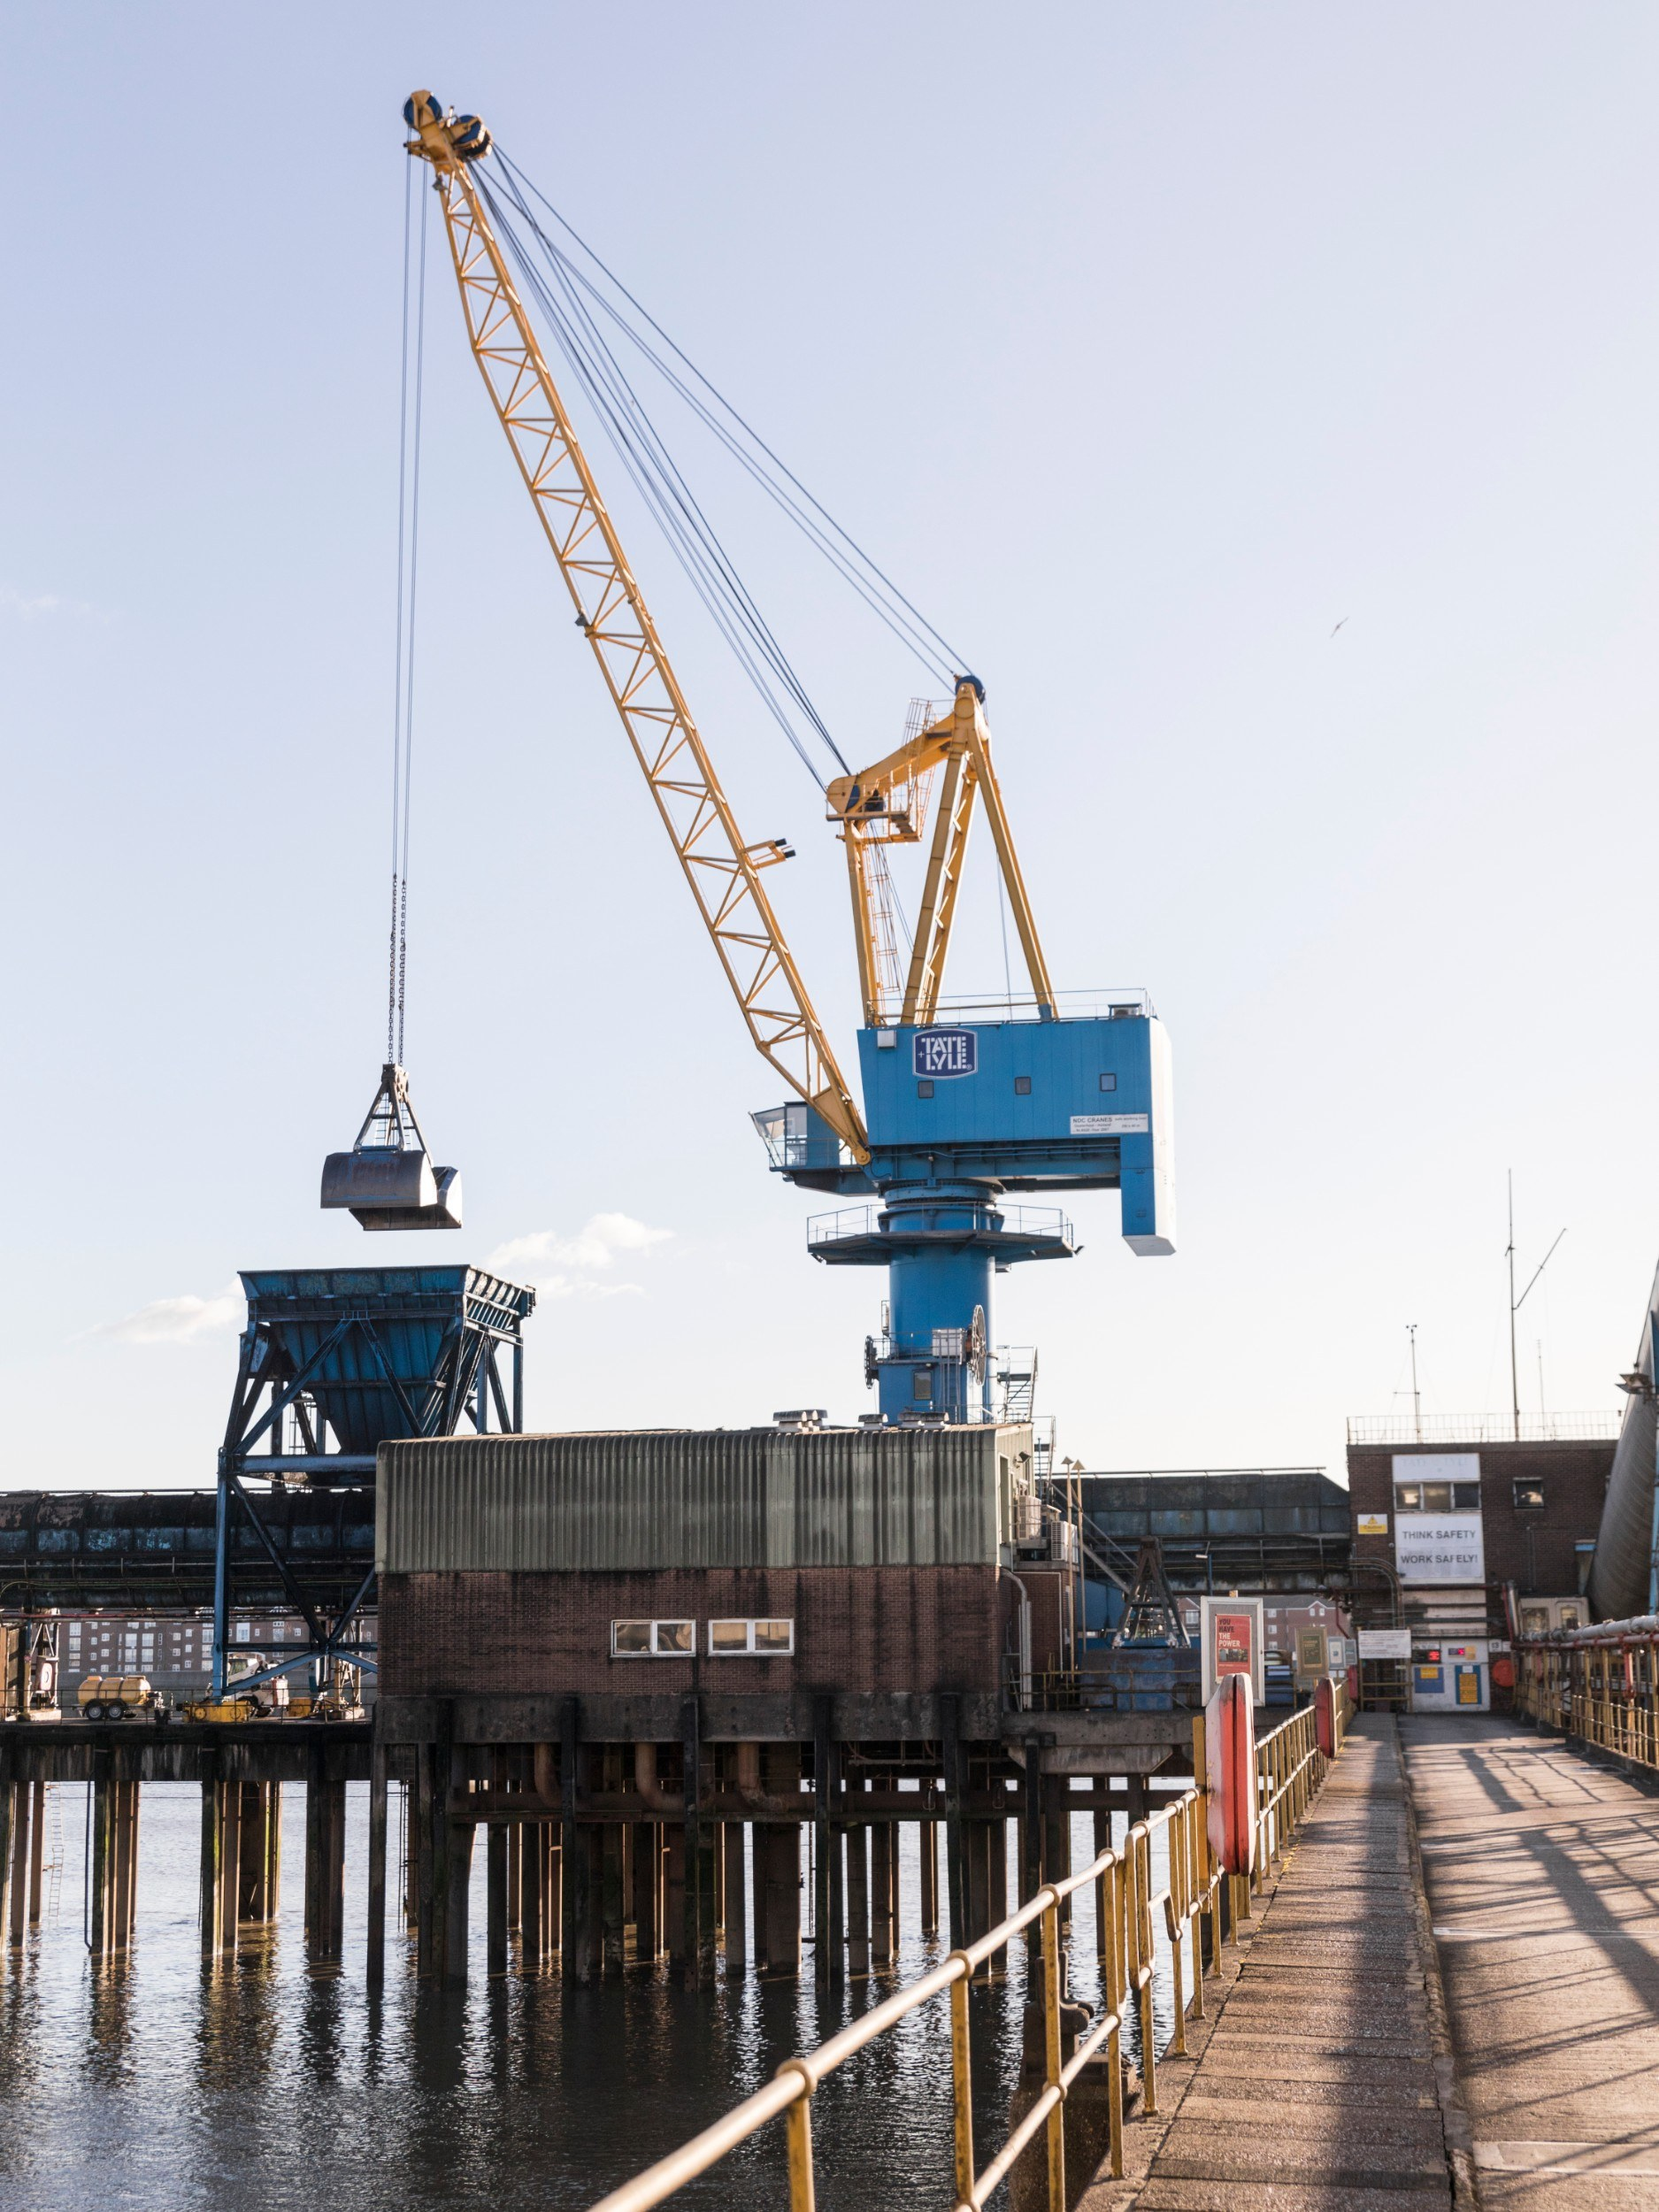 Pier with Tate & Lyle crane at work